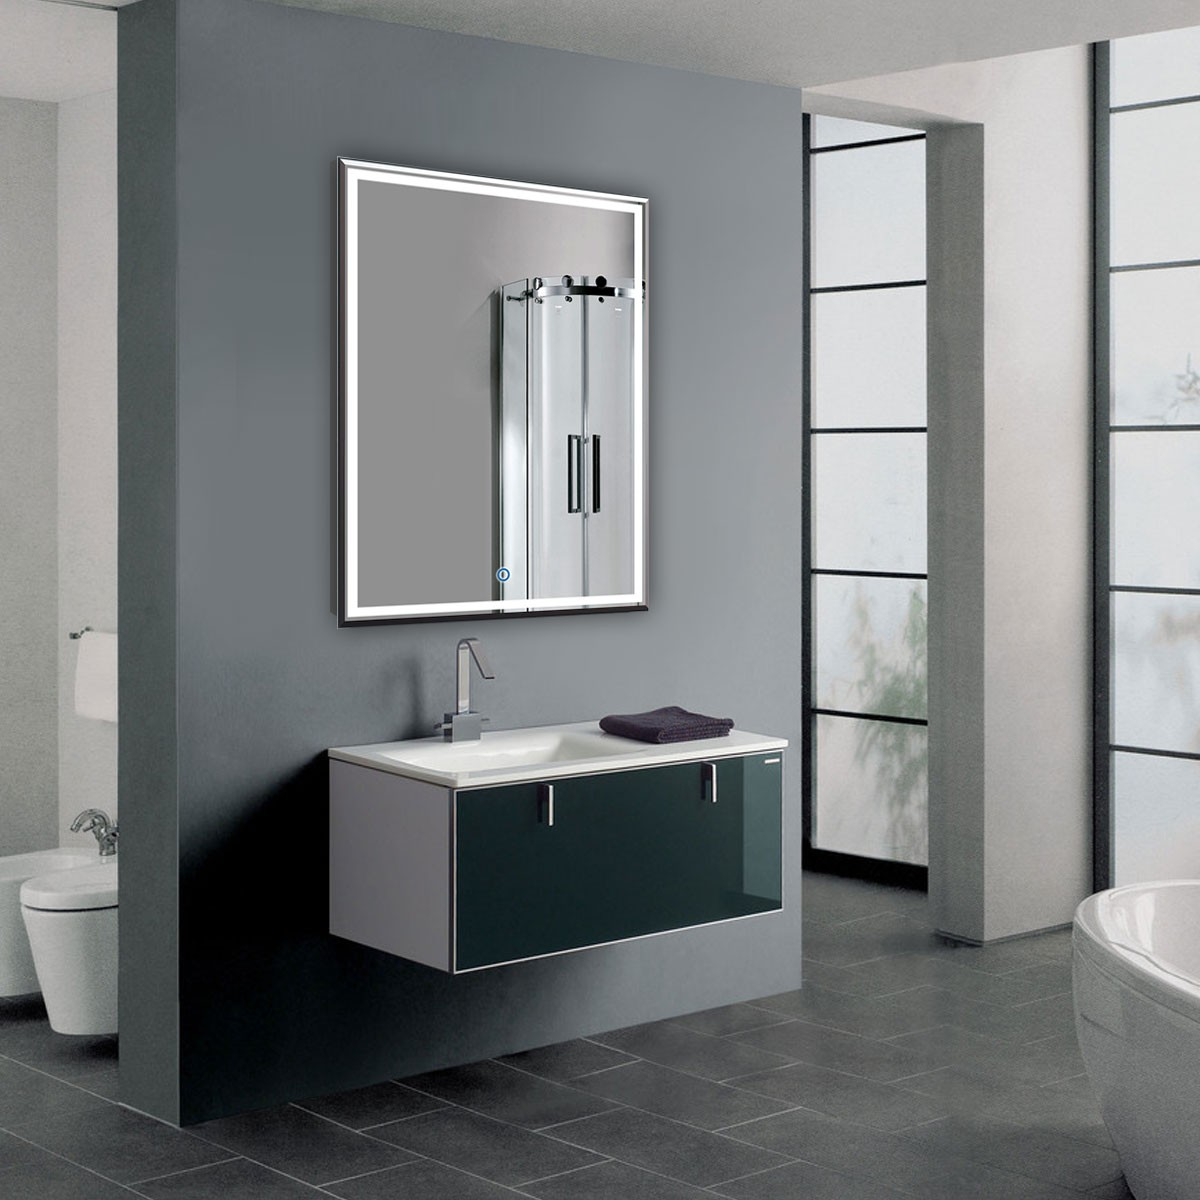 Bathroom Mirrors With Led Lights Sale 28 X 36 In Vertical Led Bathroom Silvered Mirror With